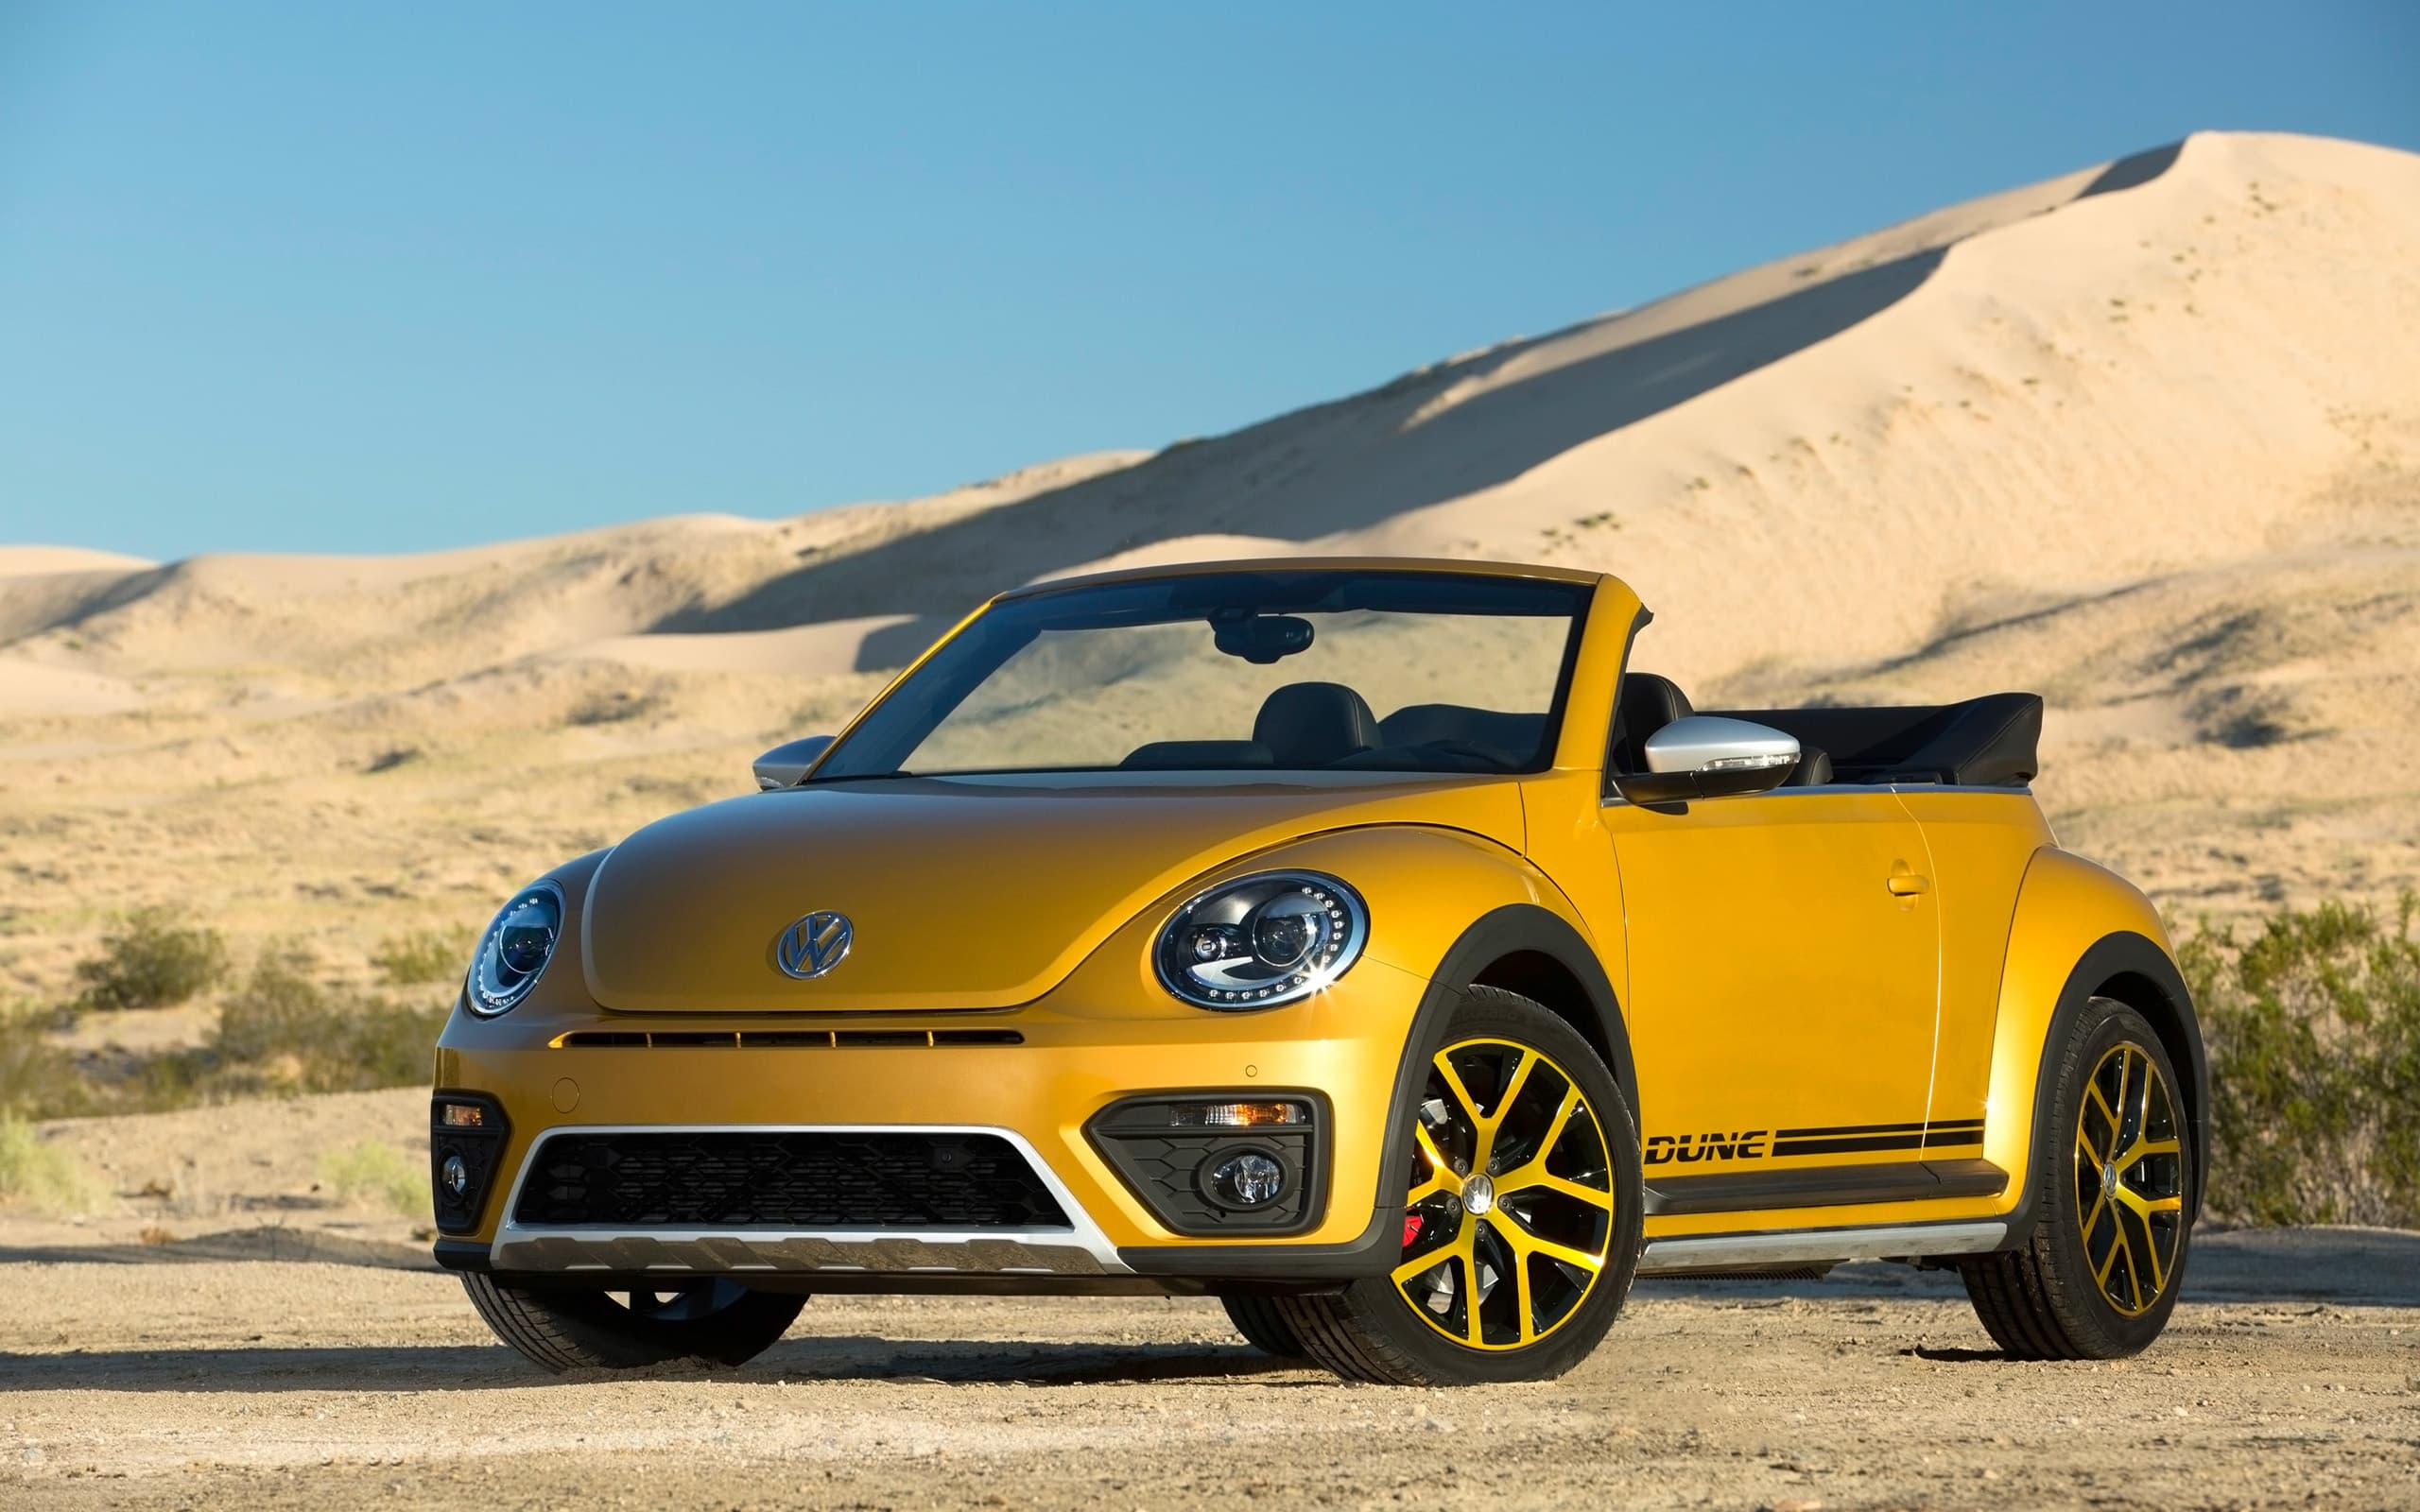 Volkswagen Beetle Dune Convertible 2016 Wallpapers High Resolution 2000 Jetta 2 0 Engine Diagram Hd Wallpaper